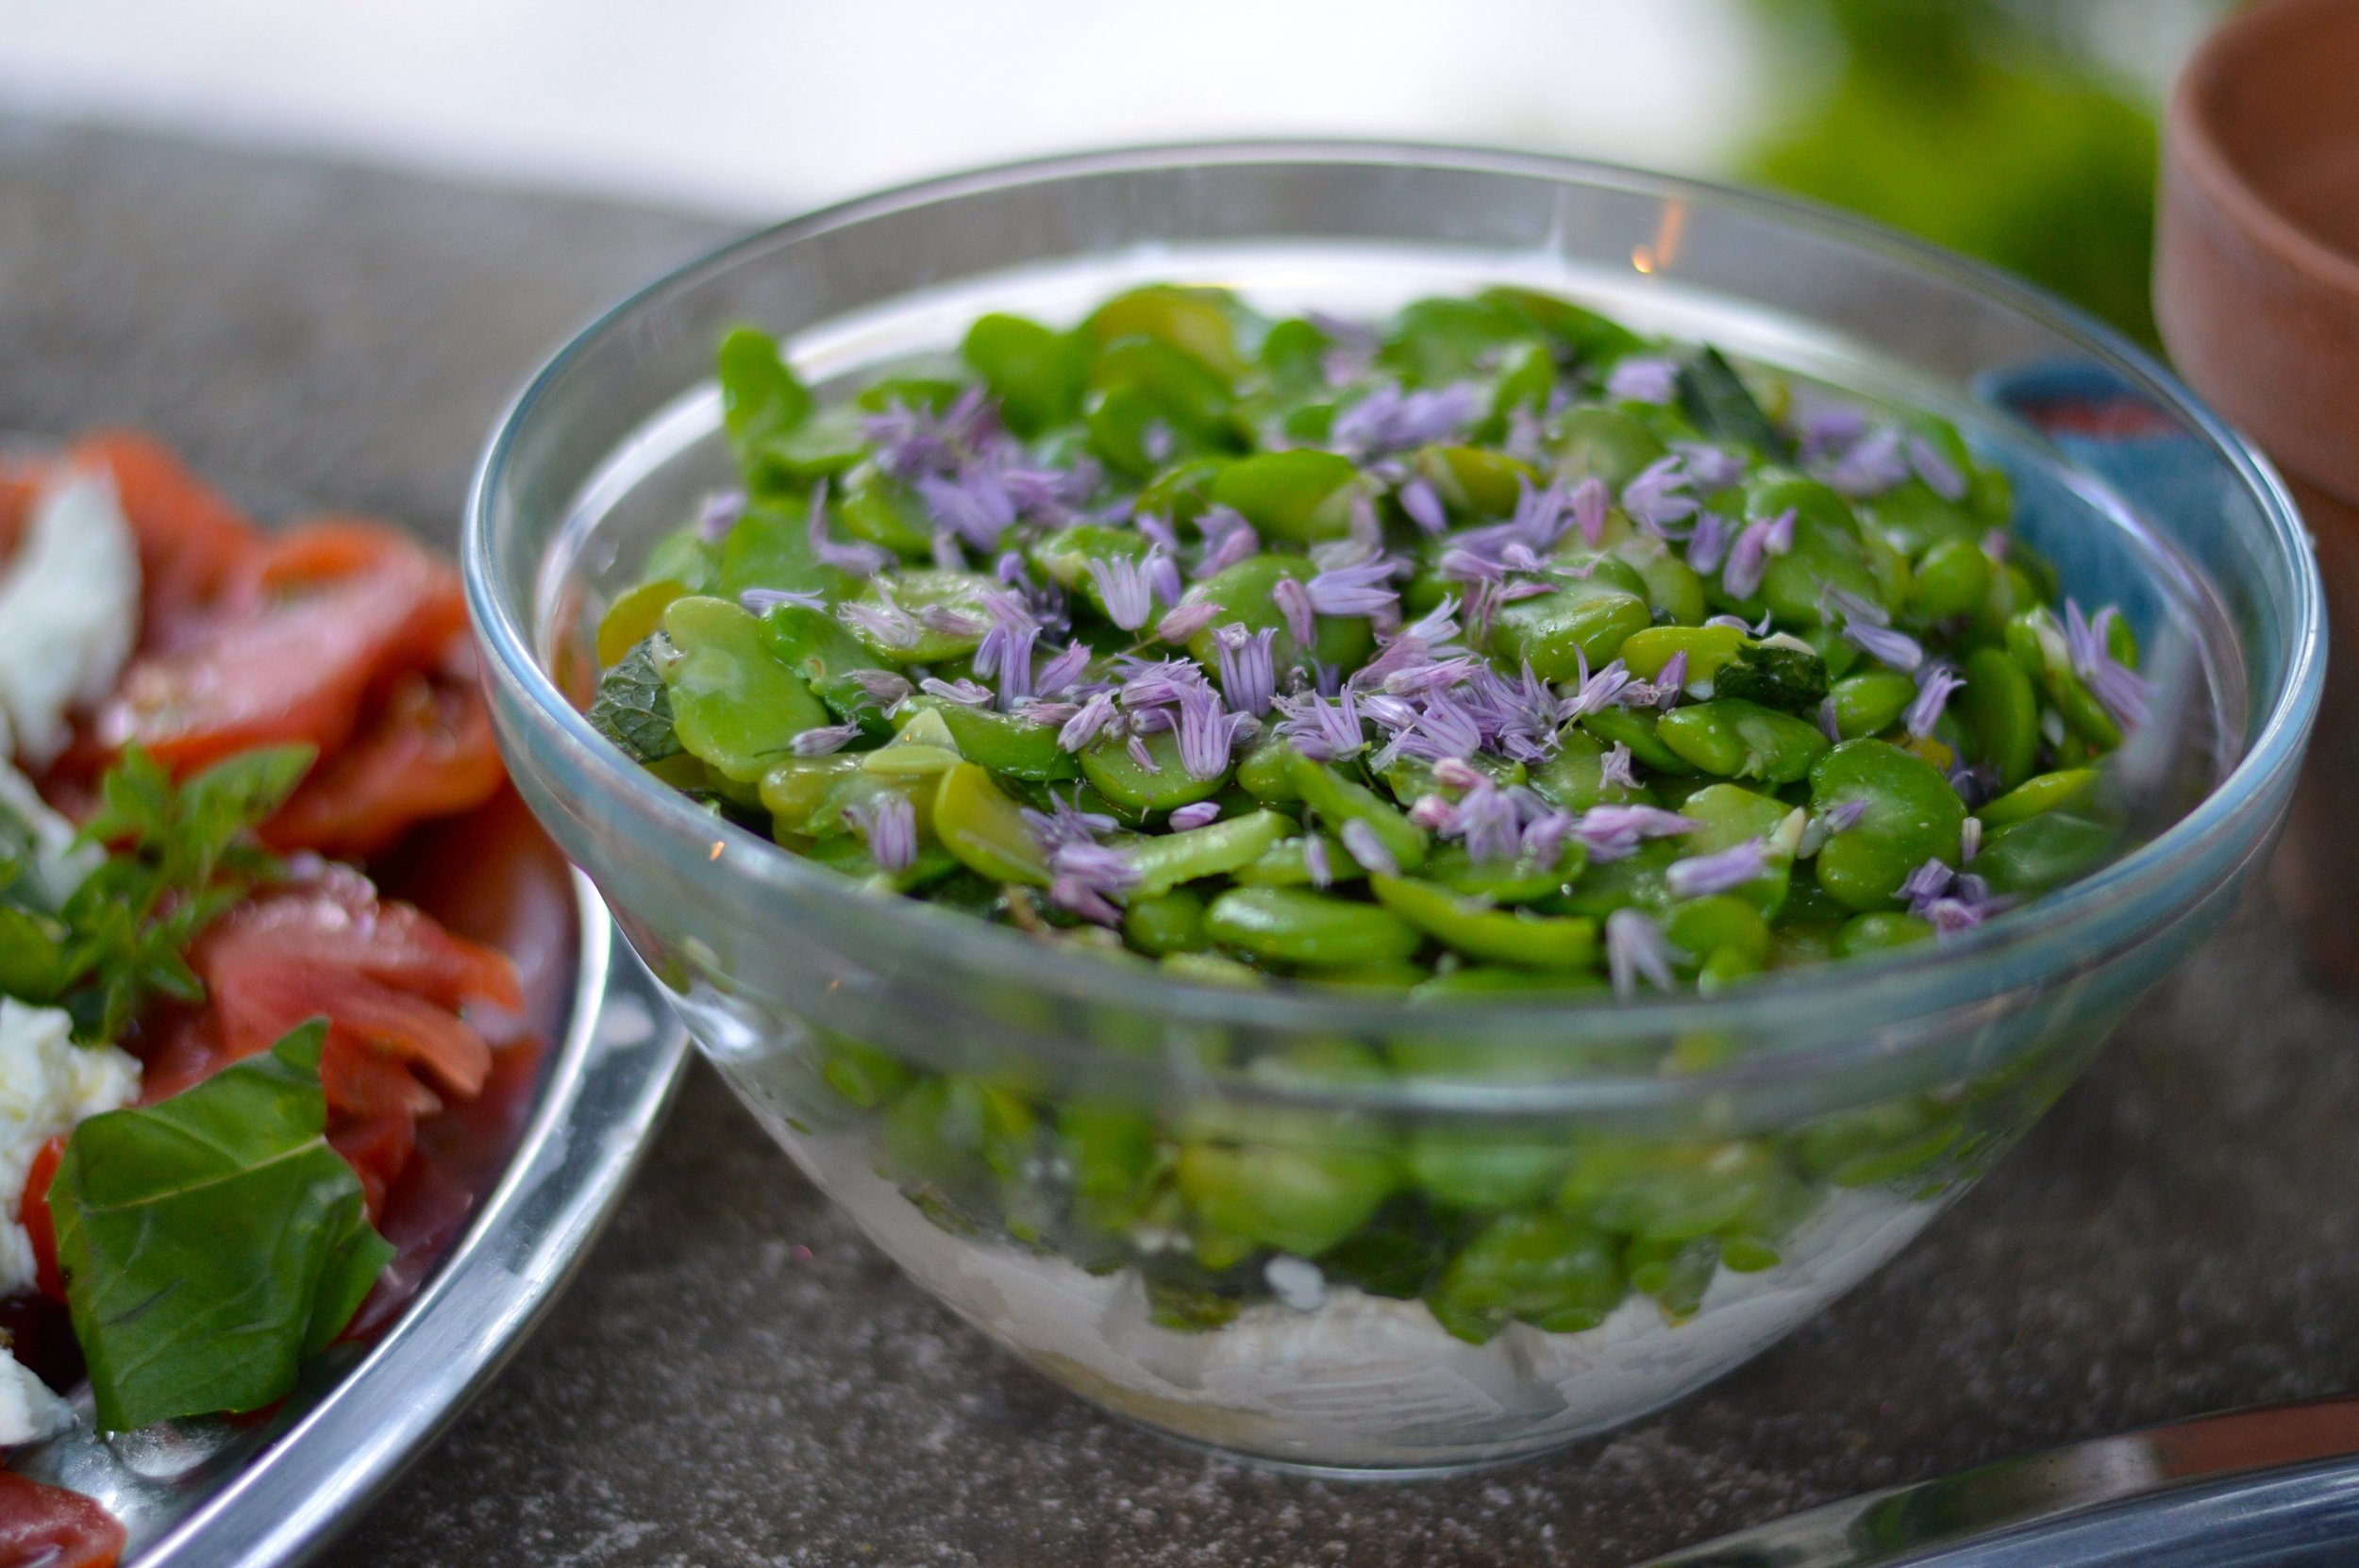 Bowl of bright green beans garnished with flowers